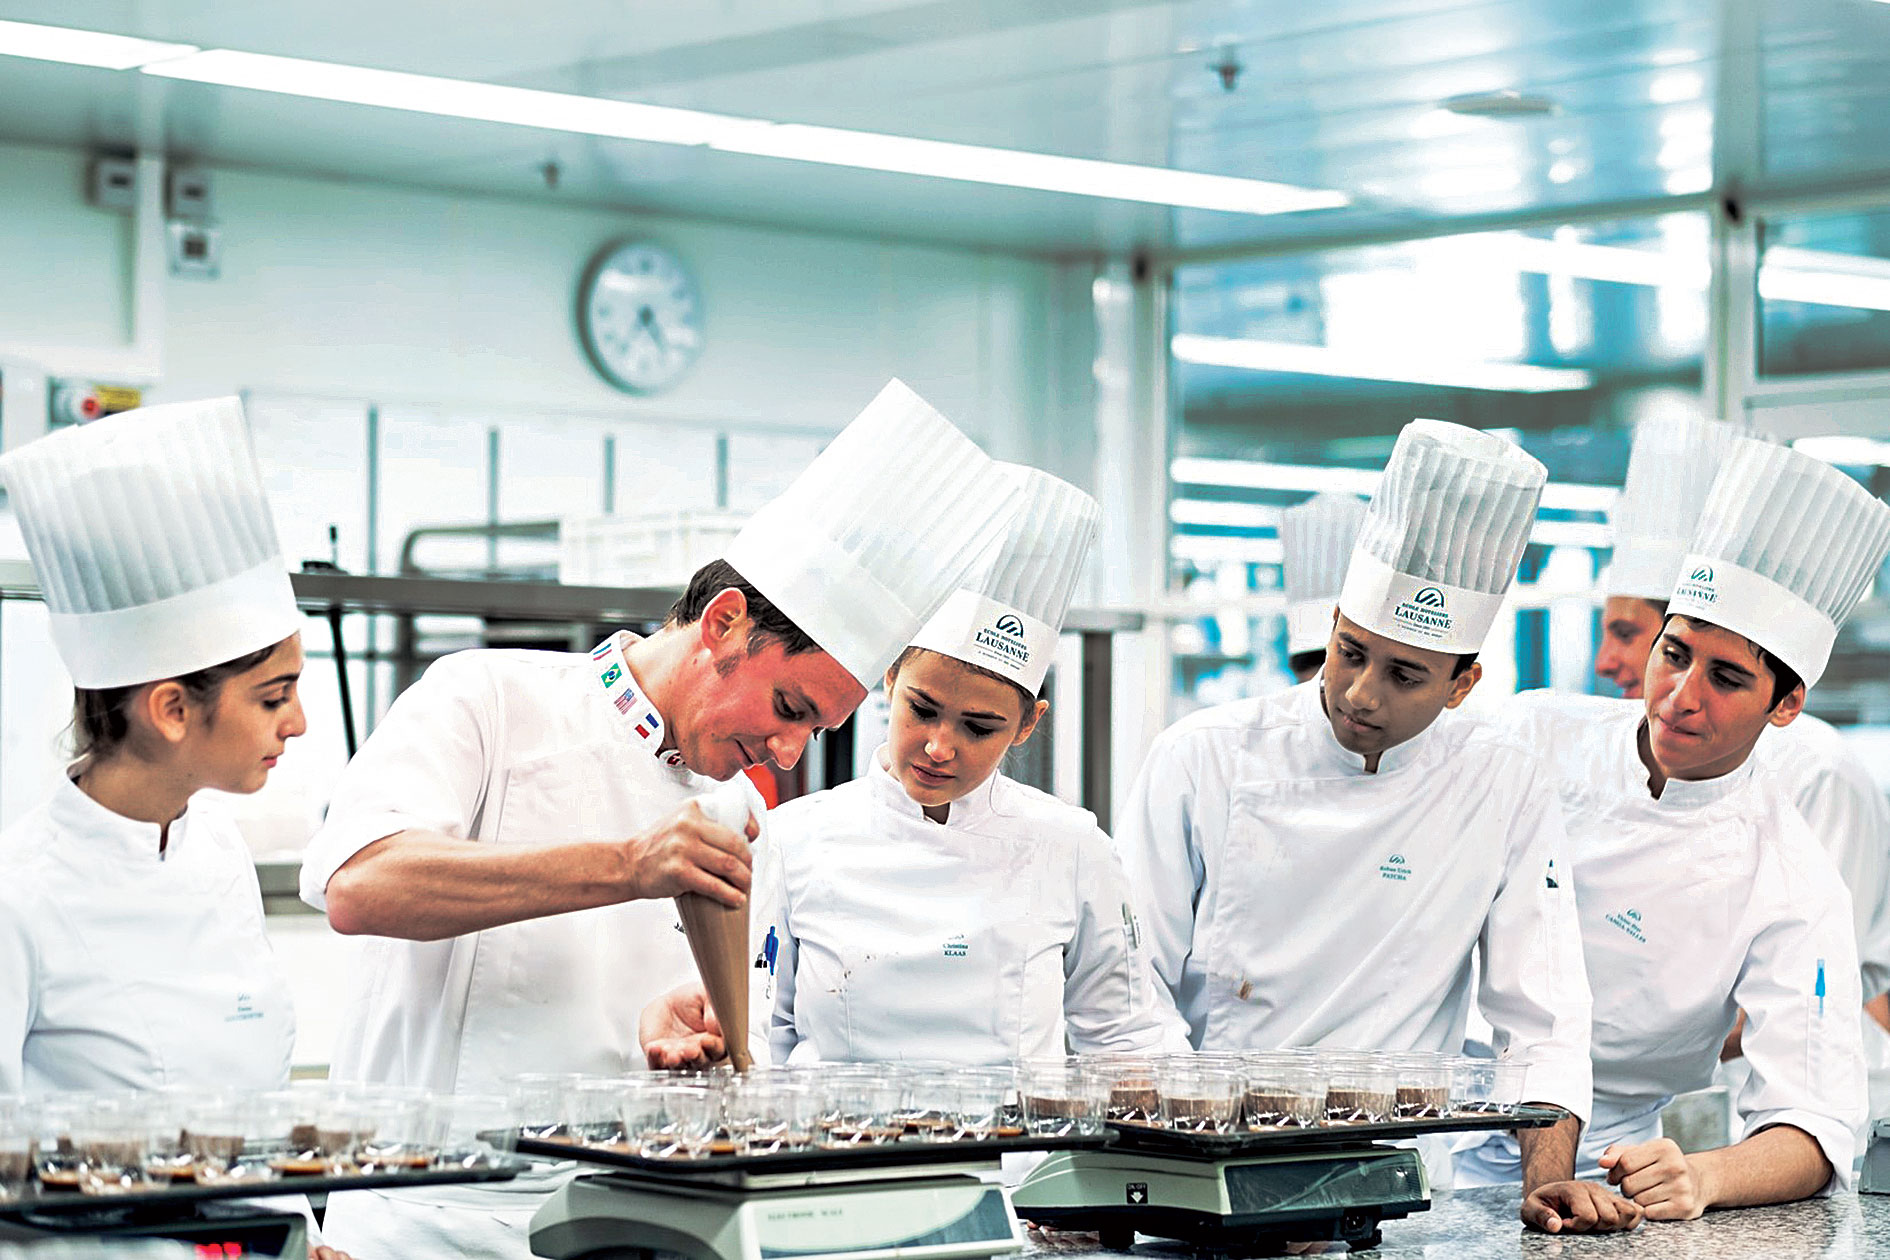 Even in India, where the economy has hit a rough patch, the hospitality sector is thriving, having attracted $10.6 billion in foreign investment in the new millennium. The sector offers a range of jobs — from event planner to hotel general manager to facilities asset manager and beyond.